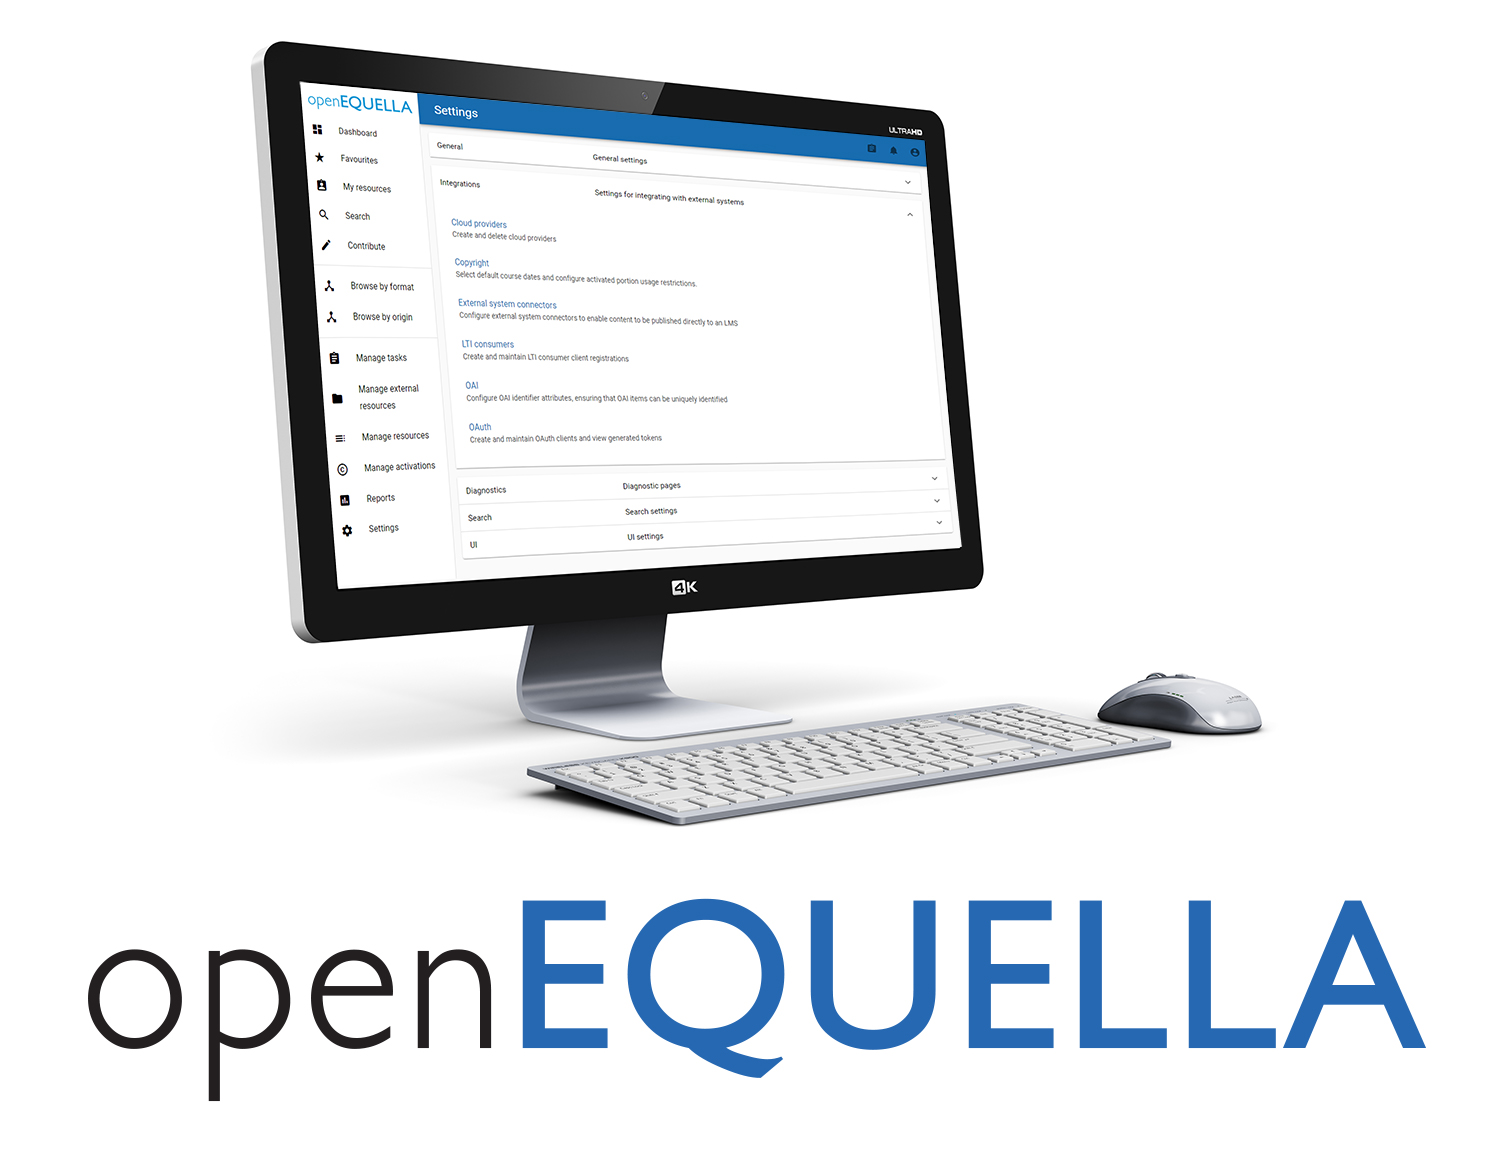 openEQUELLA - Digital Repository for Educational Content Management